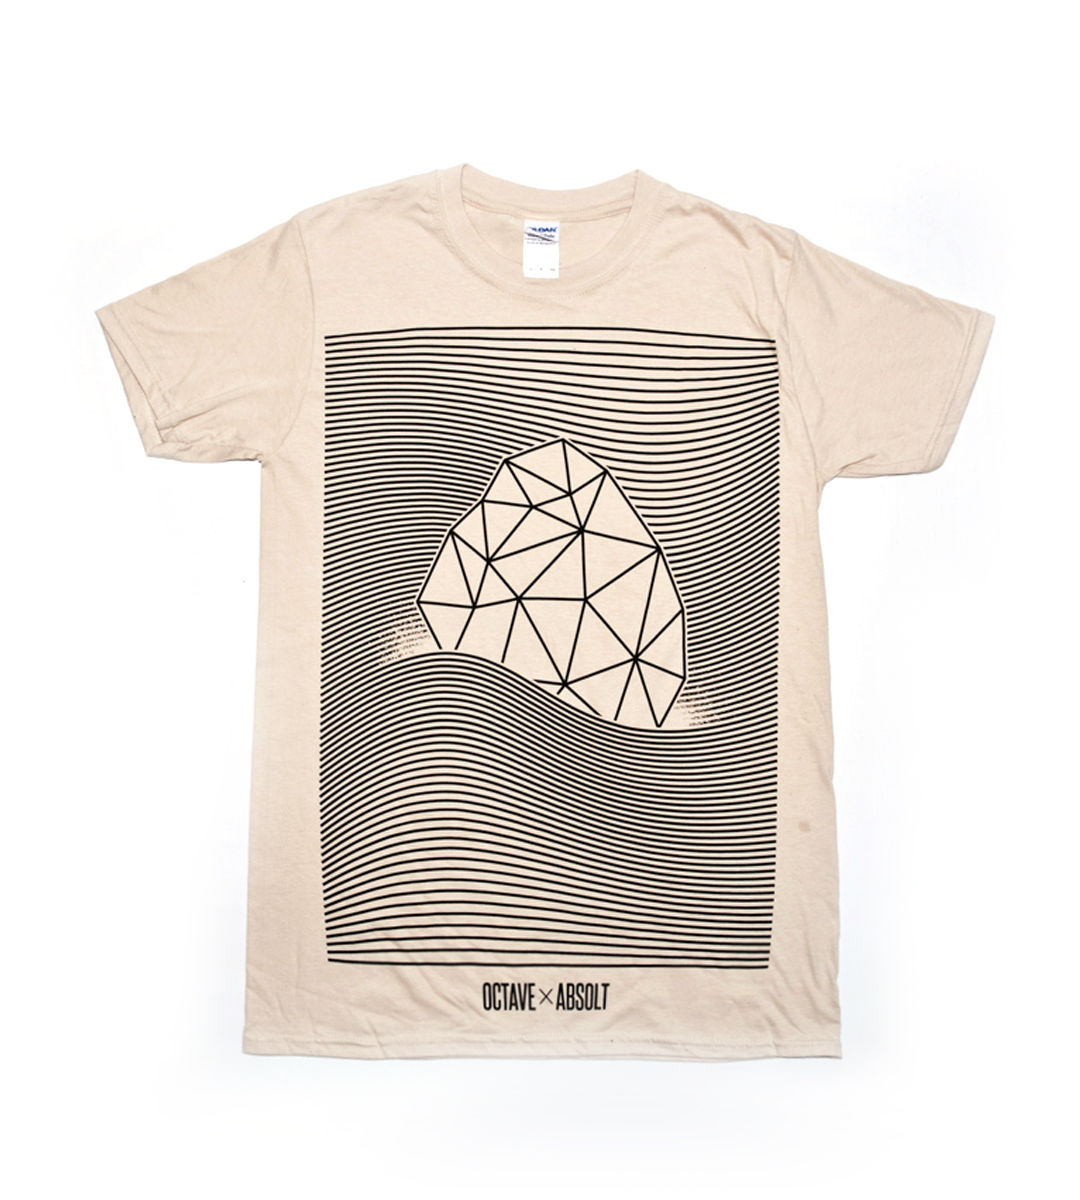 Absolt x Octave - T-shirt - product images  of